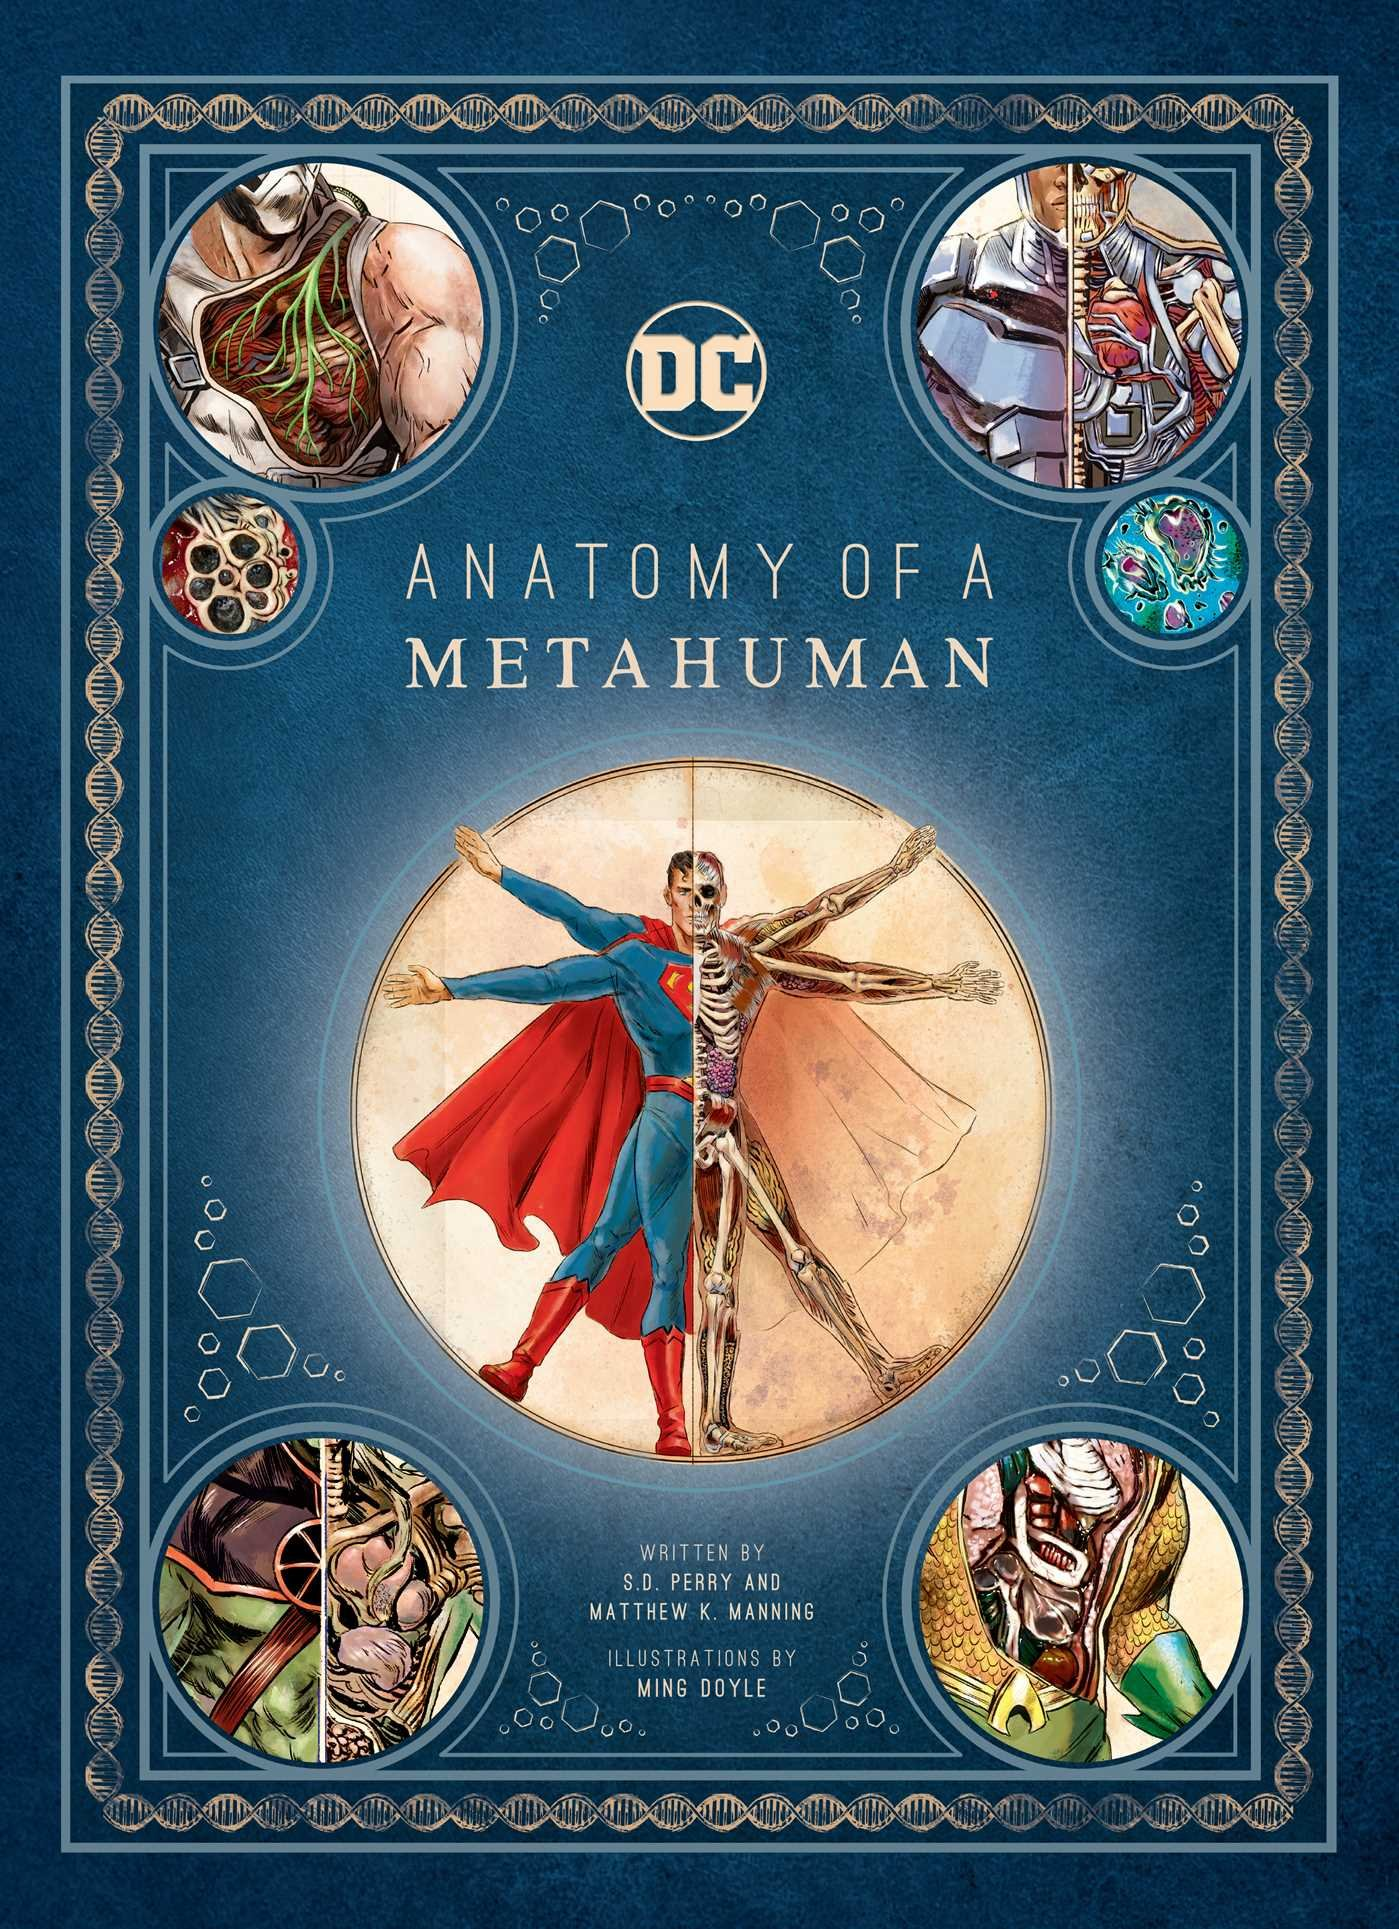 DC Comics: Anatomy of a Metahuman by Insight Editions